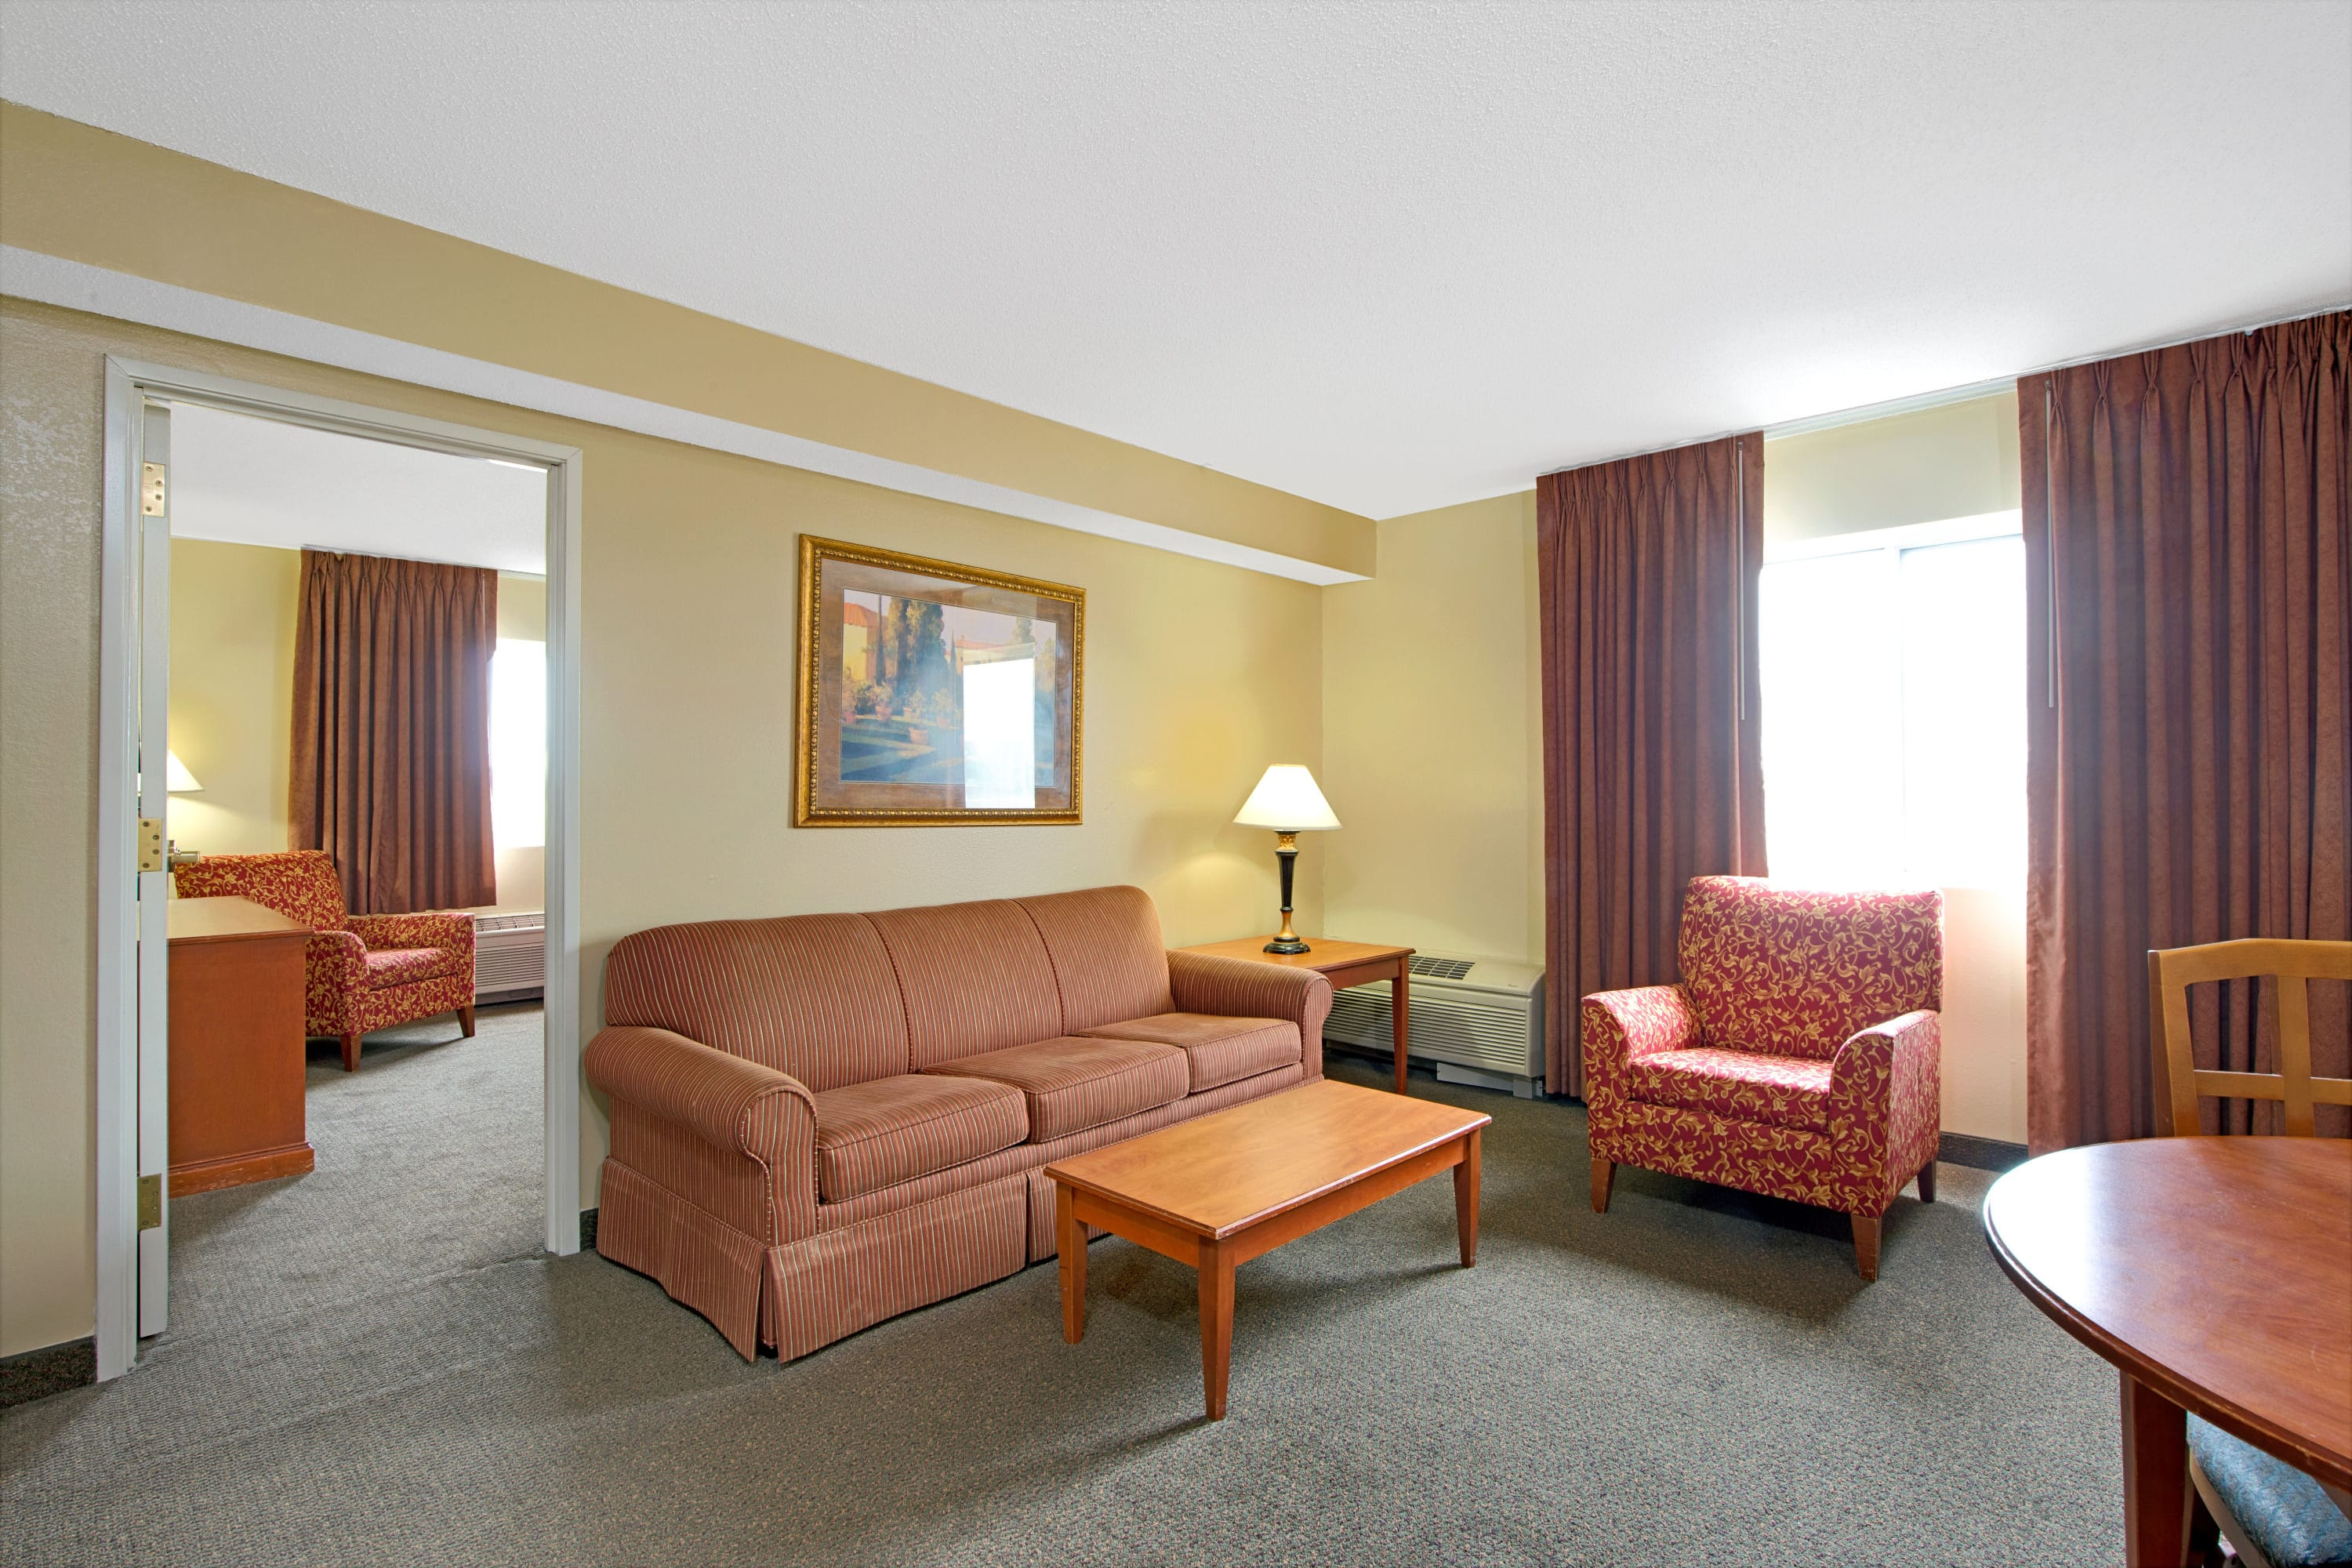 Days Inn - St. Louis/Westport MO suite in Saint Louis, Missouri